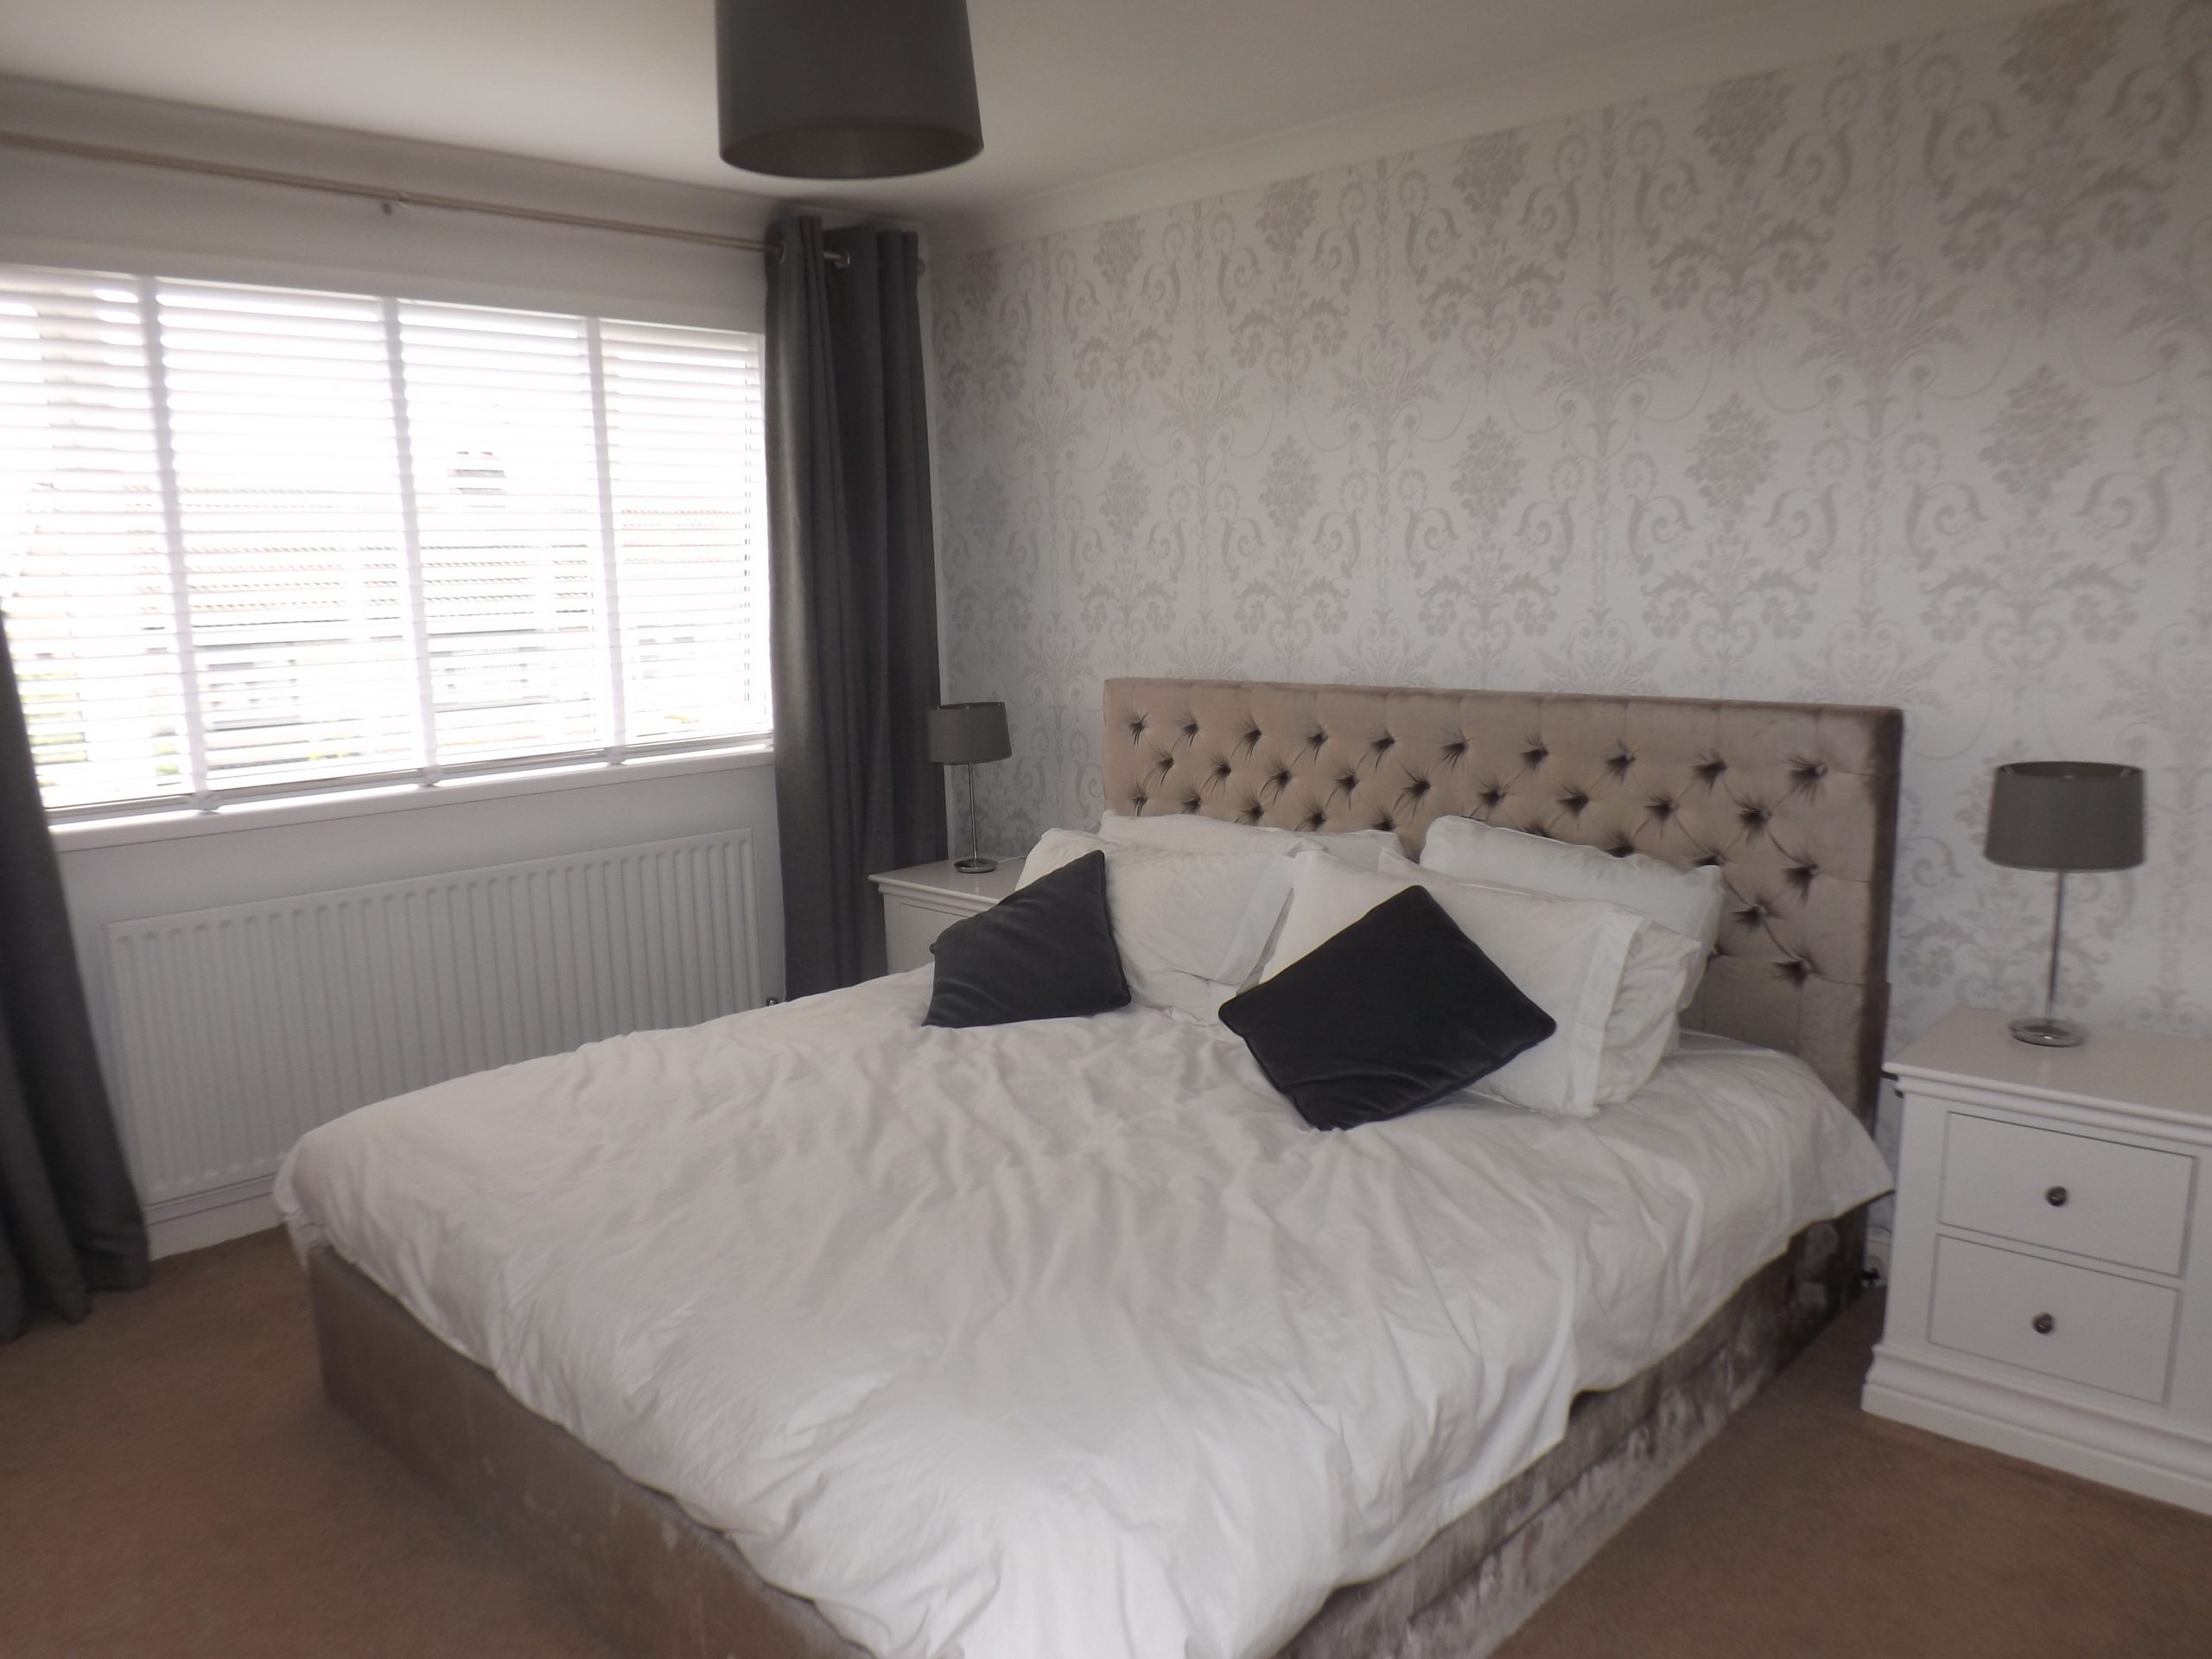 Bedroom | house in Friarside, Witton Gilbert